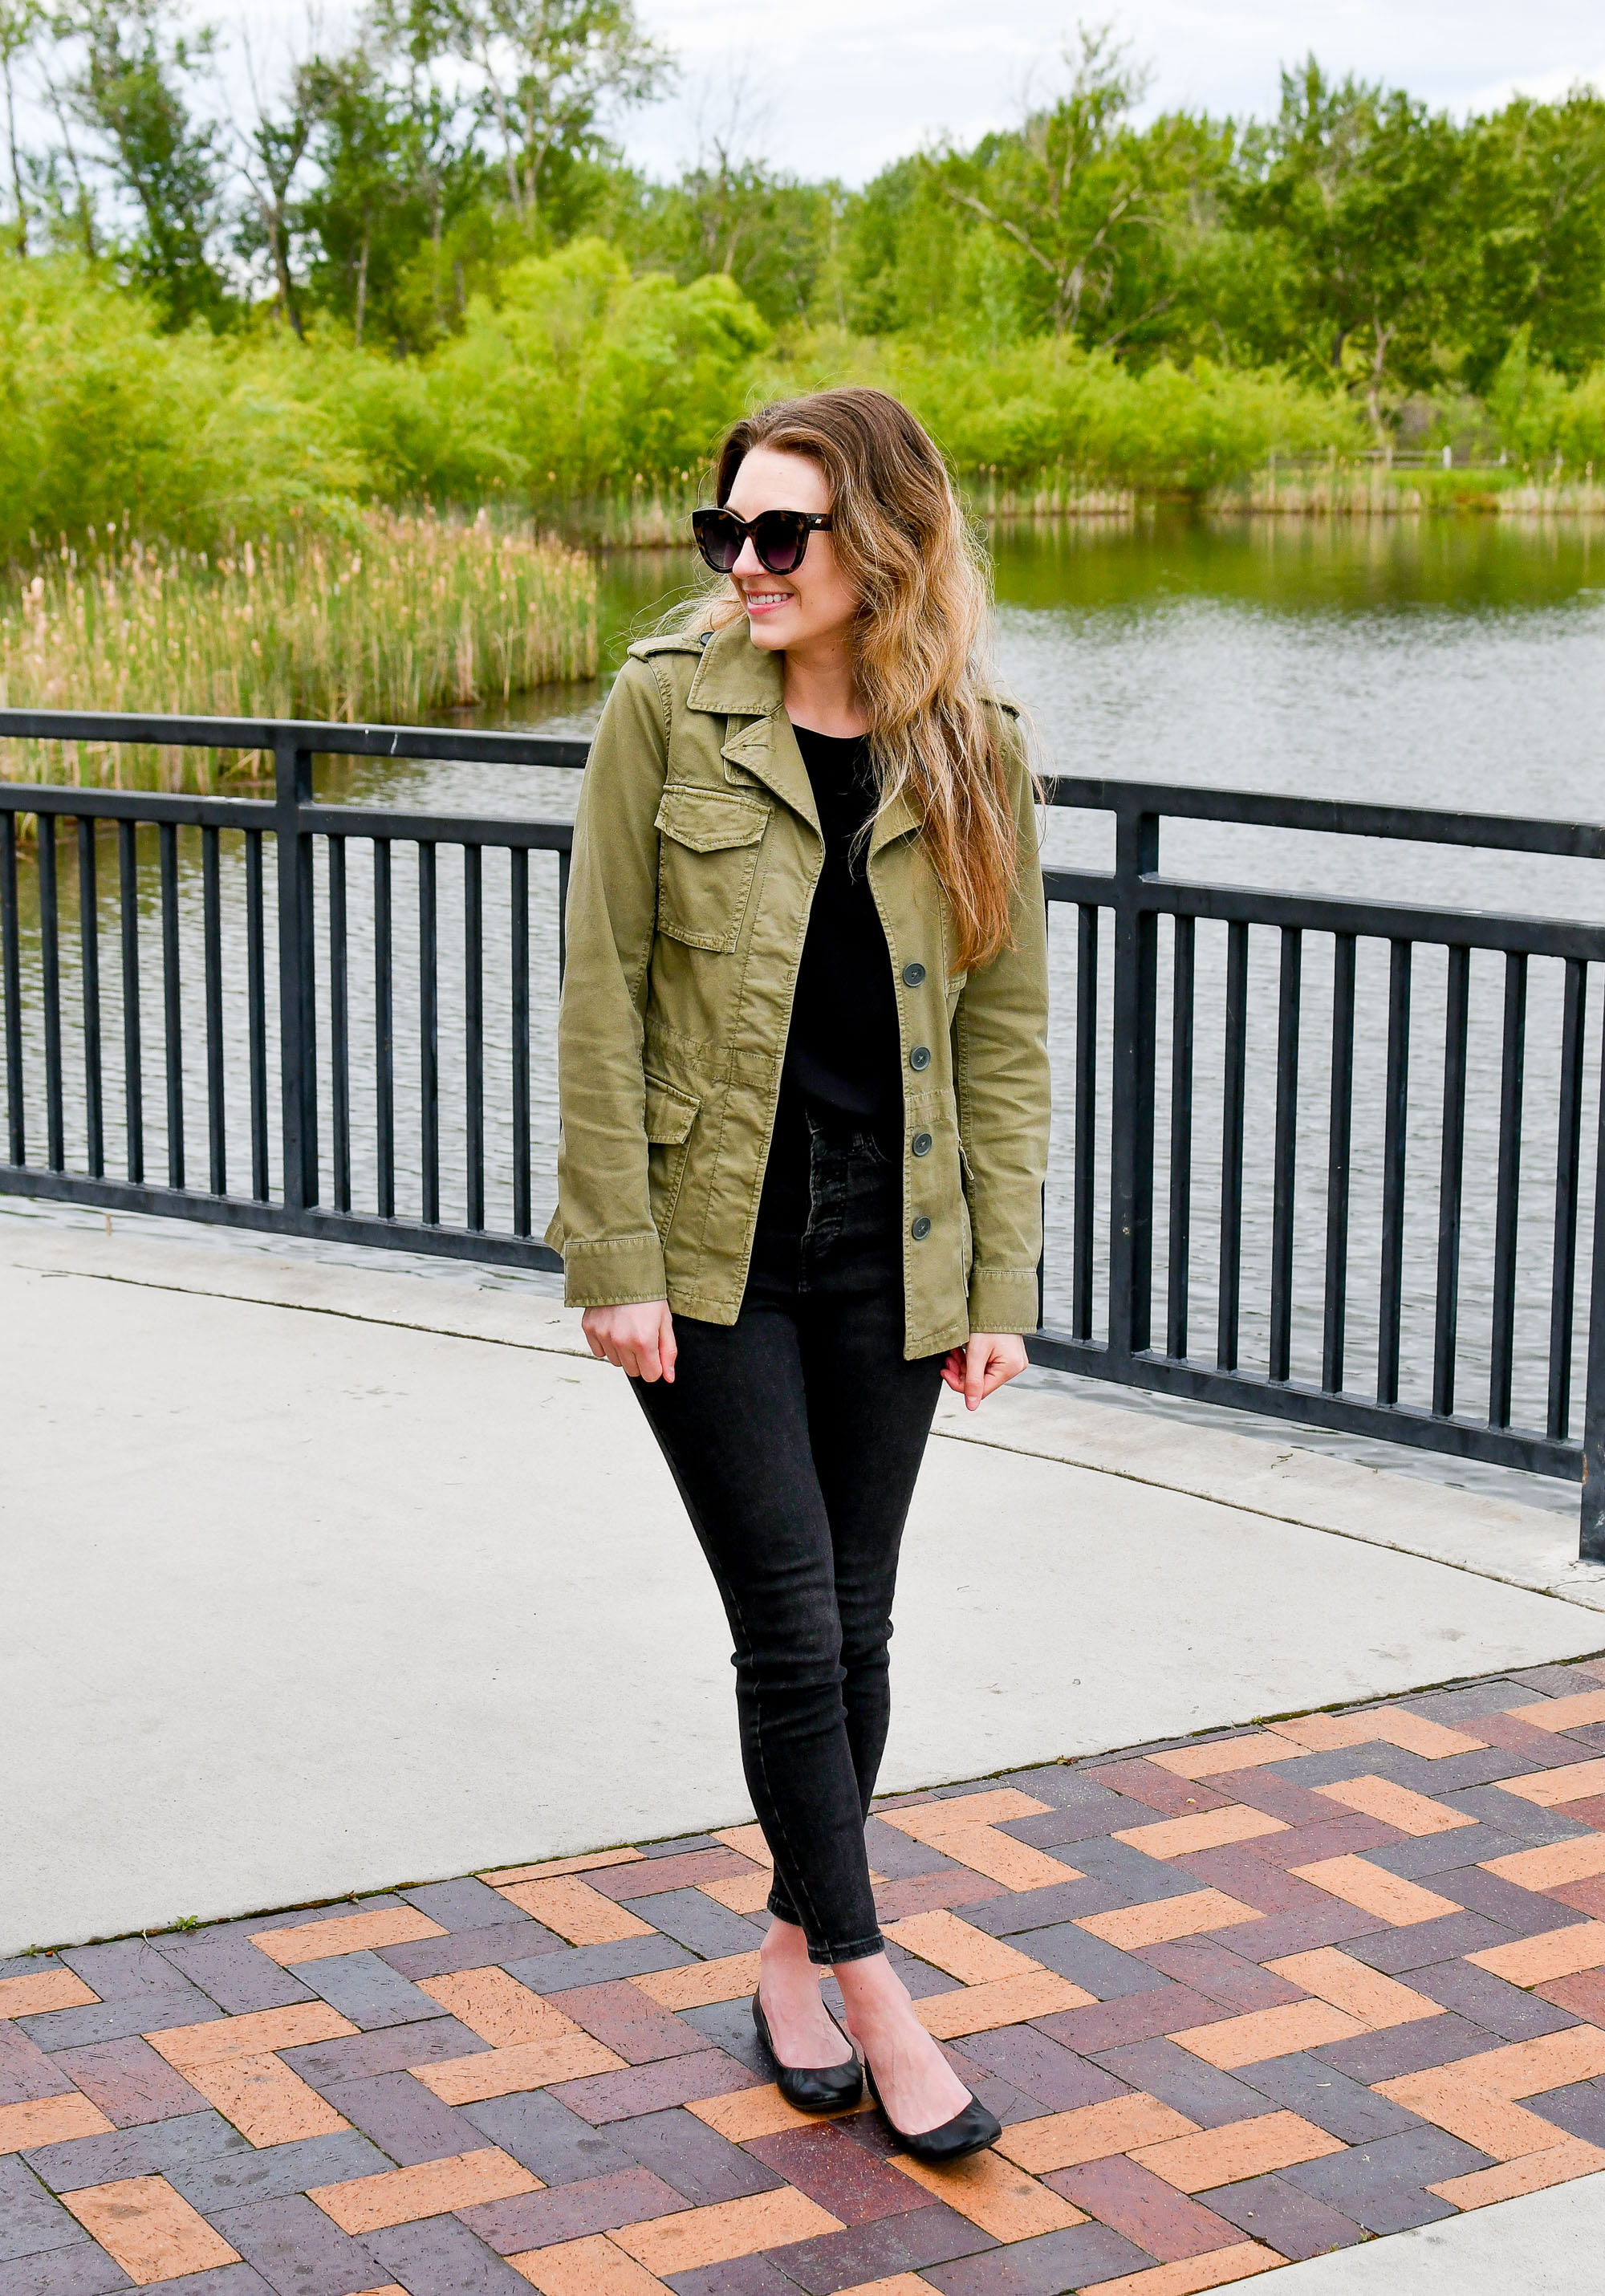 Casual spring outfit with green jacket, black tee, washed black jeans, black flats — Cotton Cashmere Cat Hair